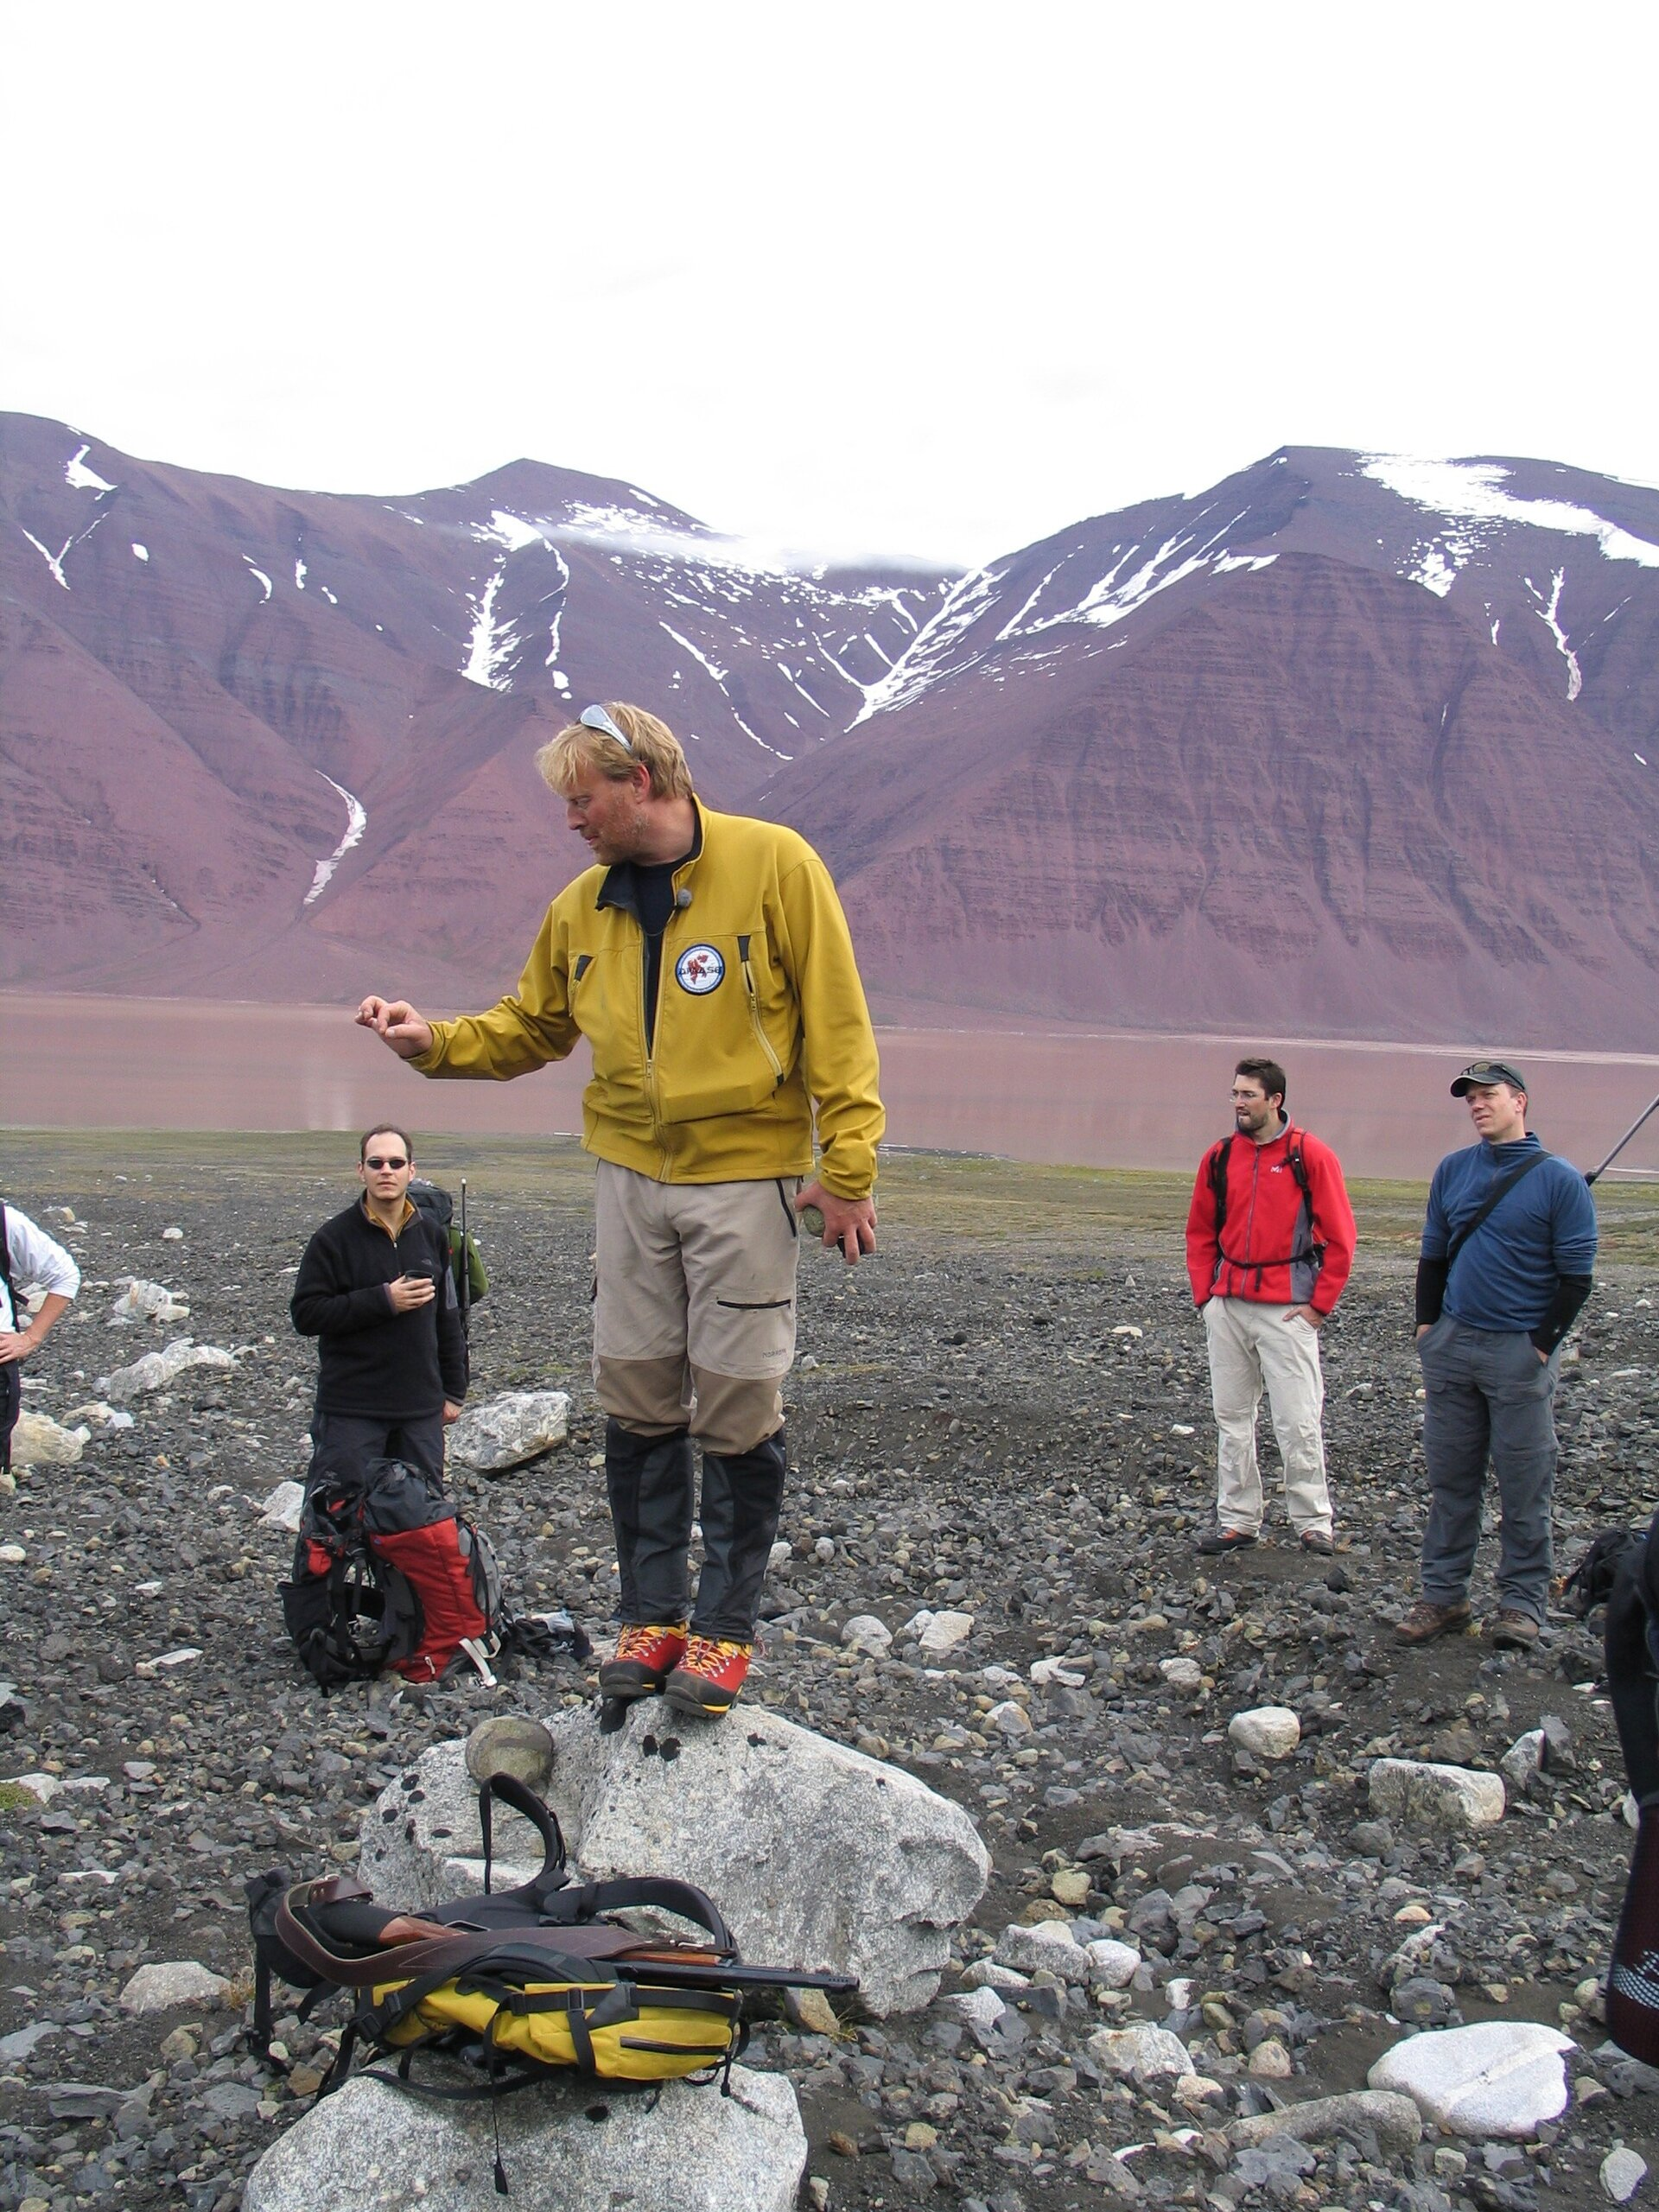 Geology 'lecture' given by our expedition leader, Hans Amundsen